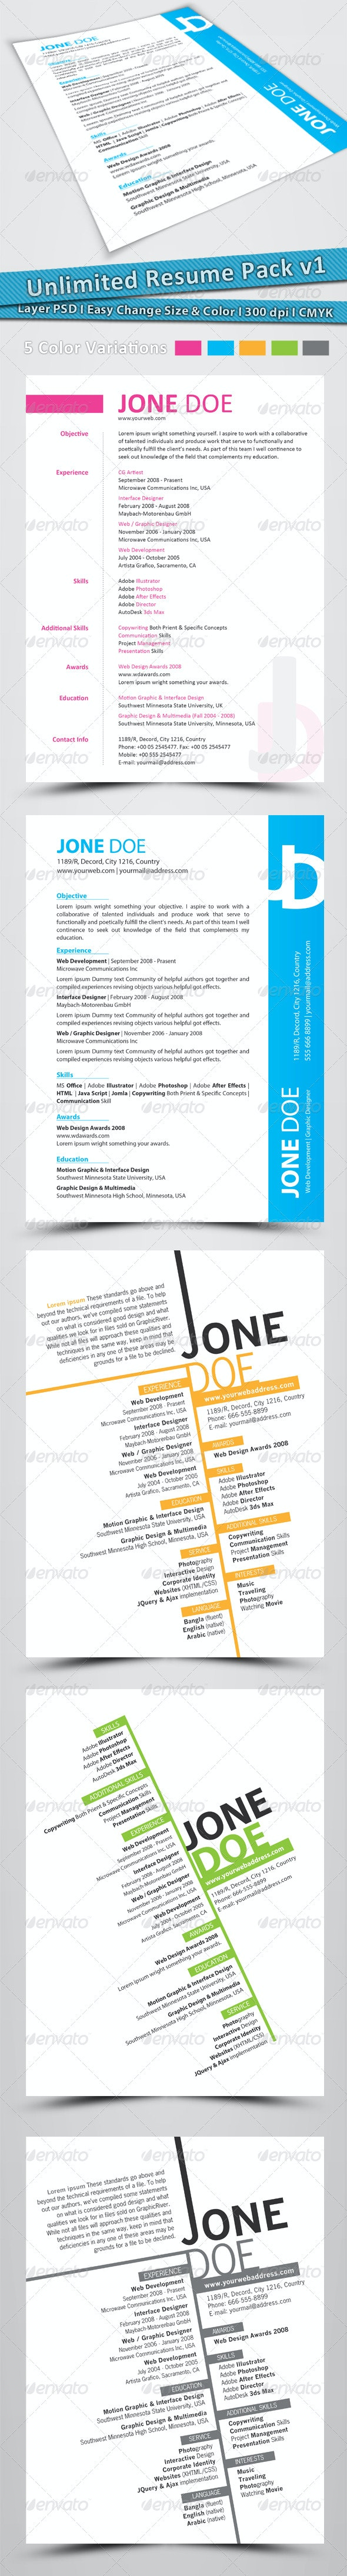 Unlimited Resume Pack v1 - Resumes Stationery